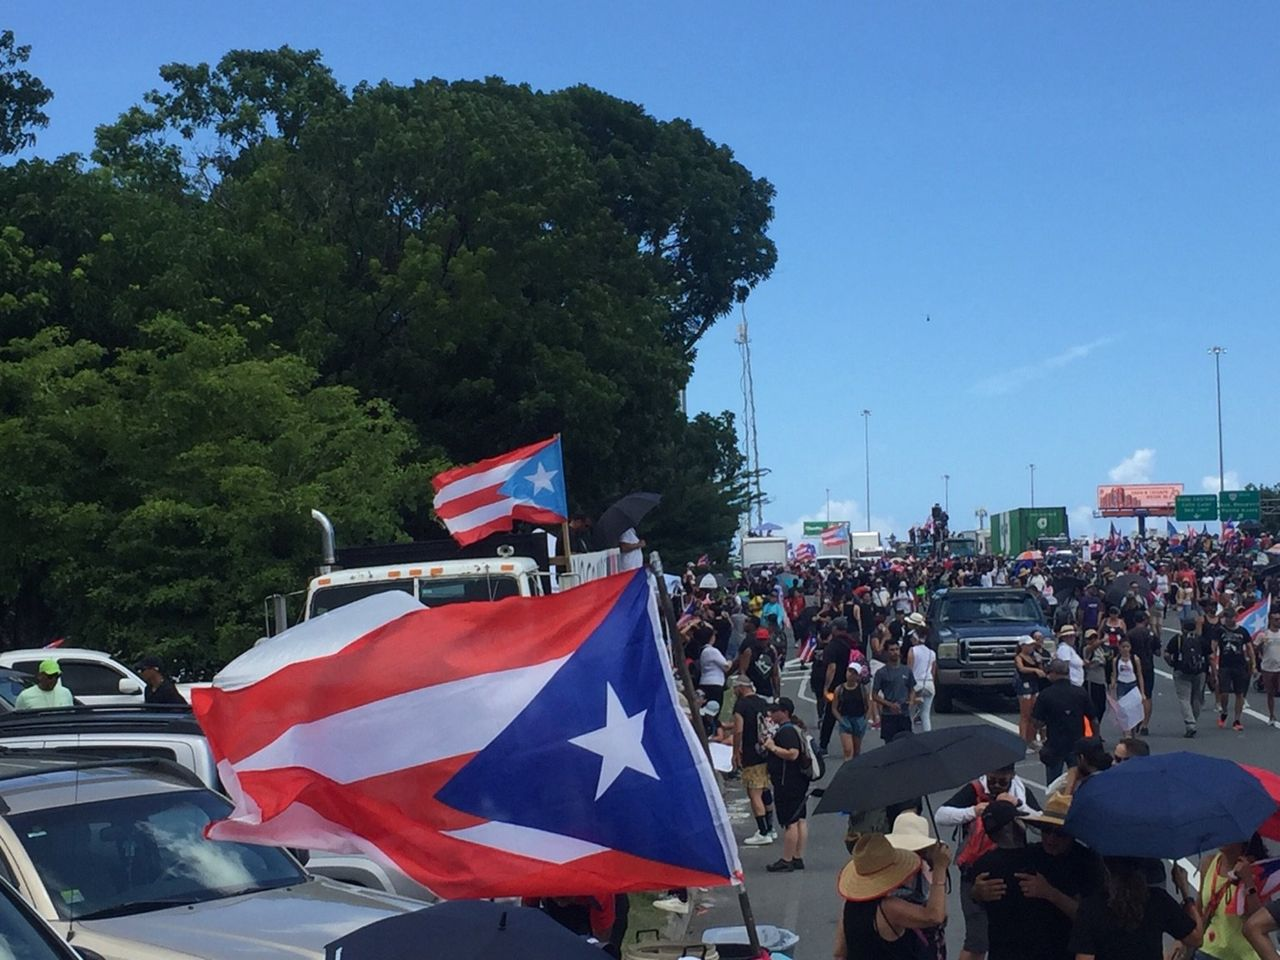 Protesters shut down a major highway